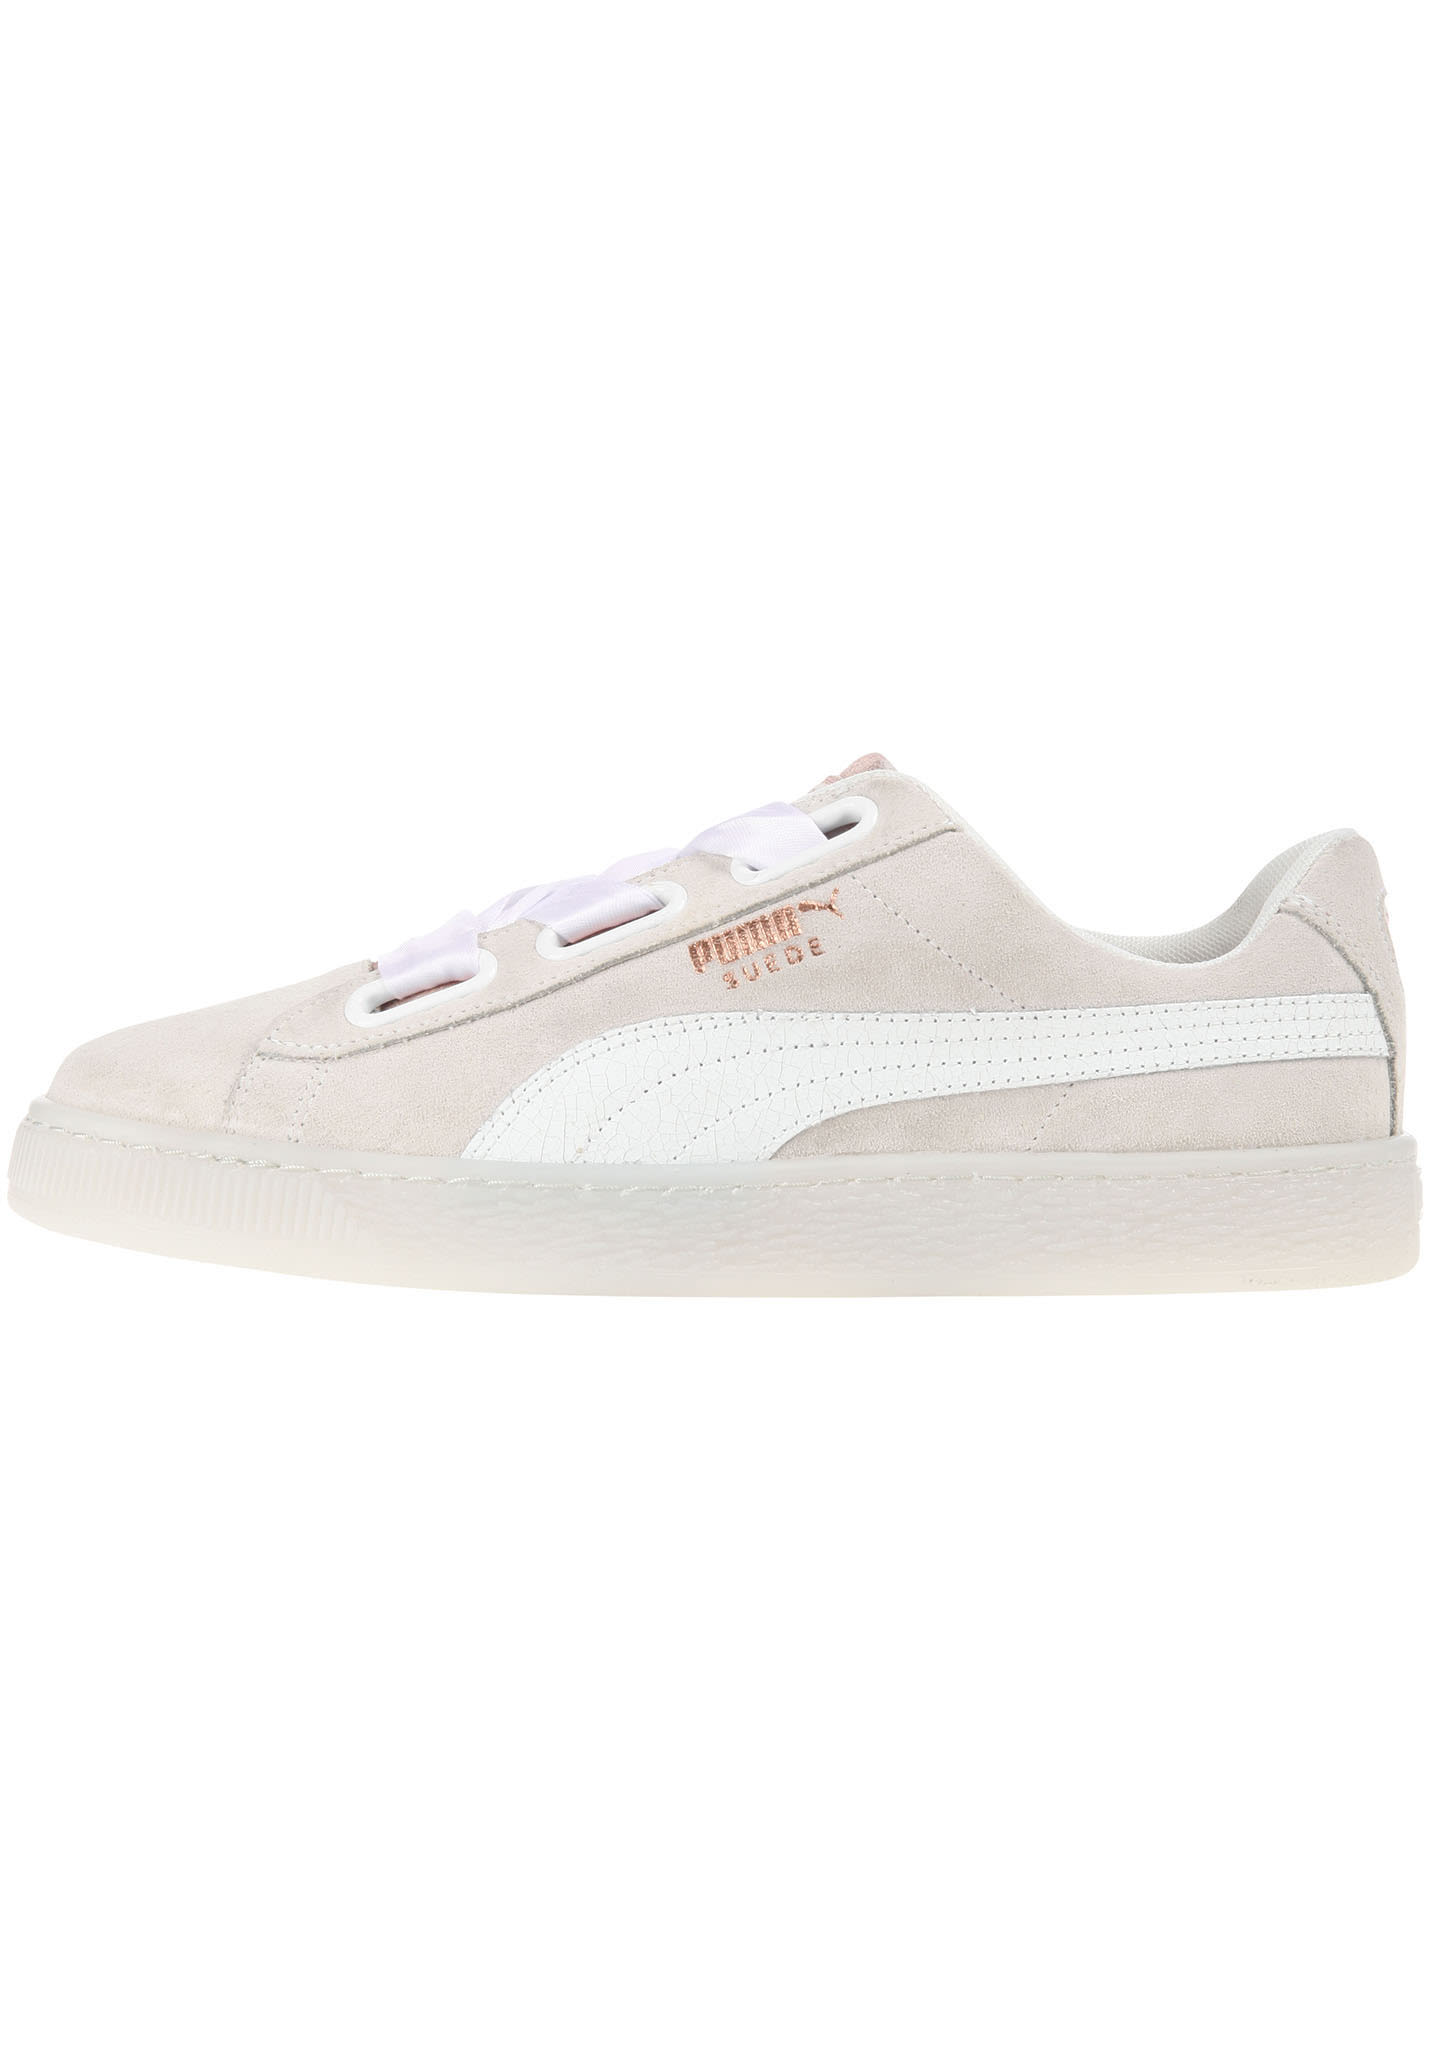 reputable site 84838 2c2c5 Puma Suede Heart Artica - Sneakers for Women - Beige